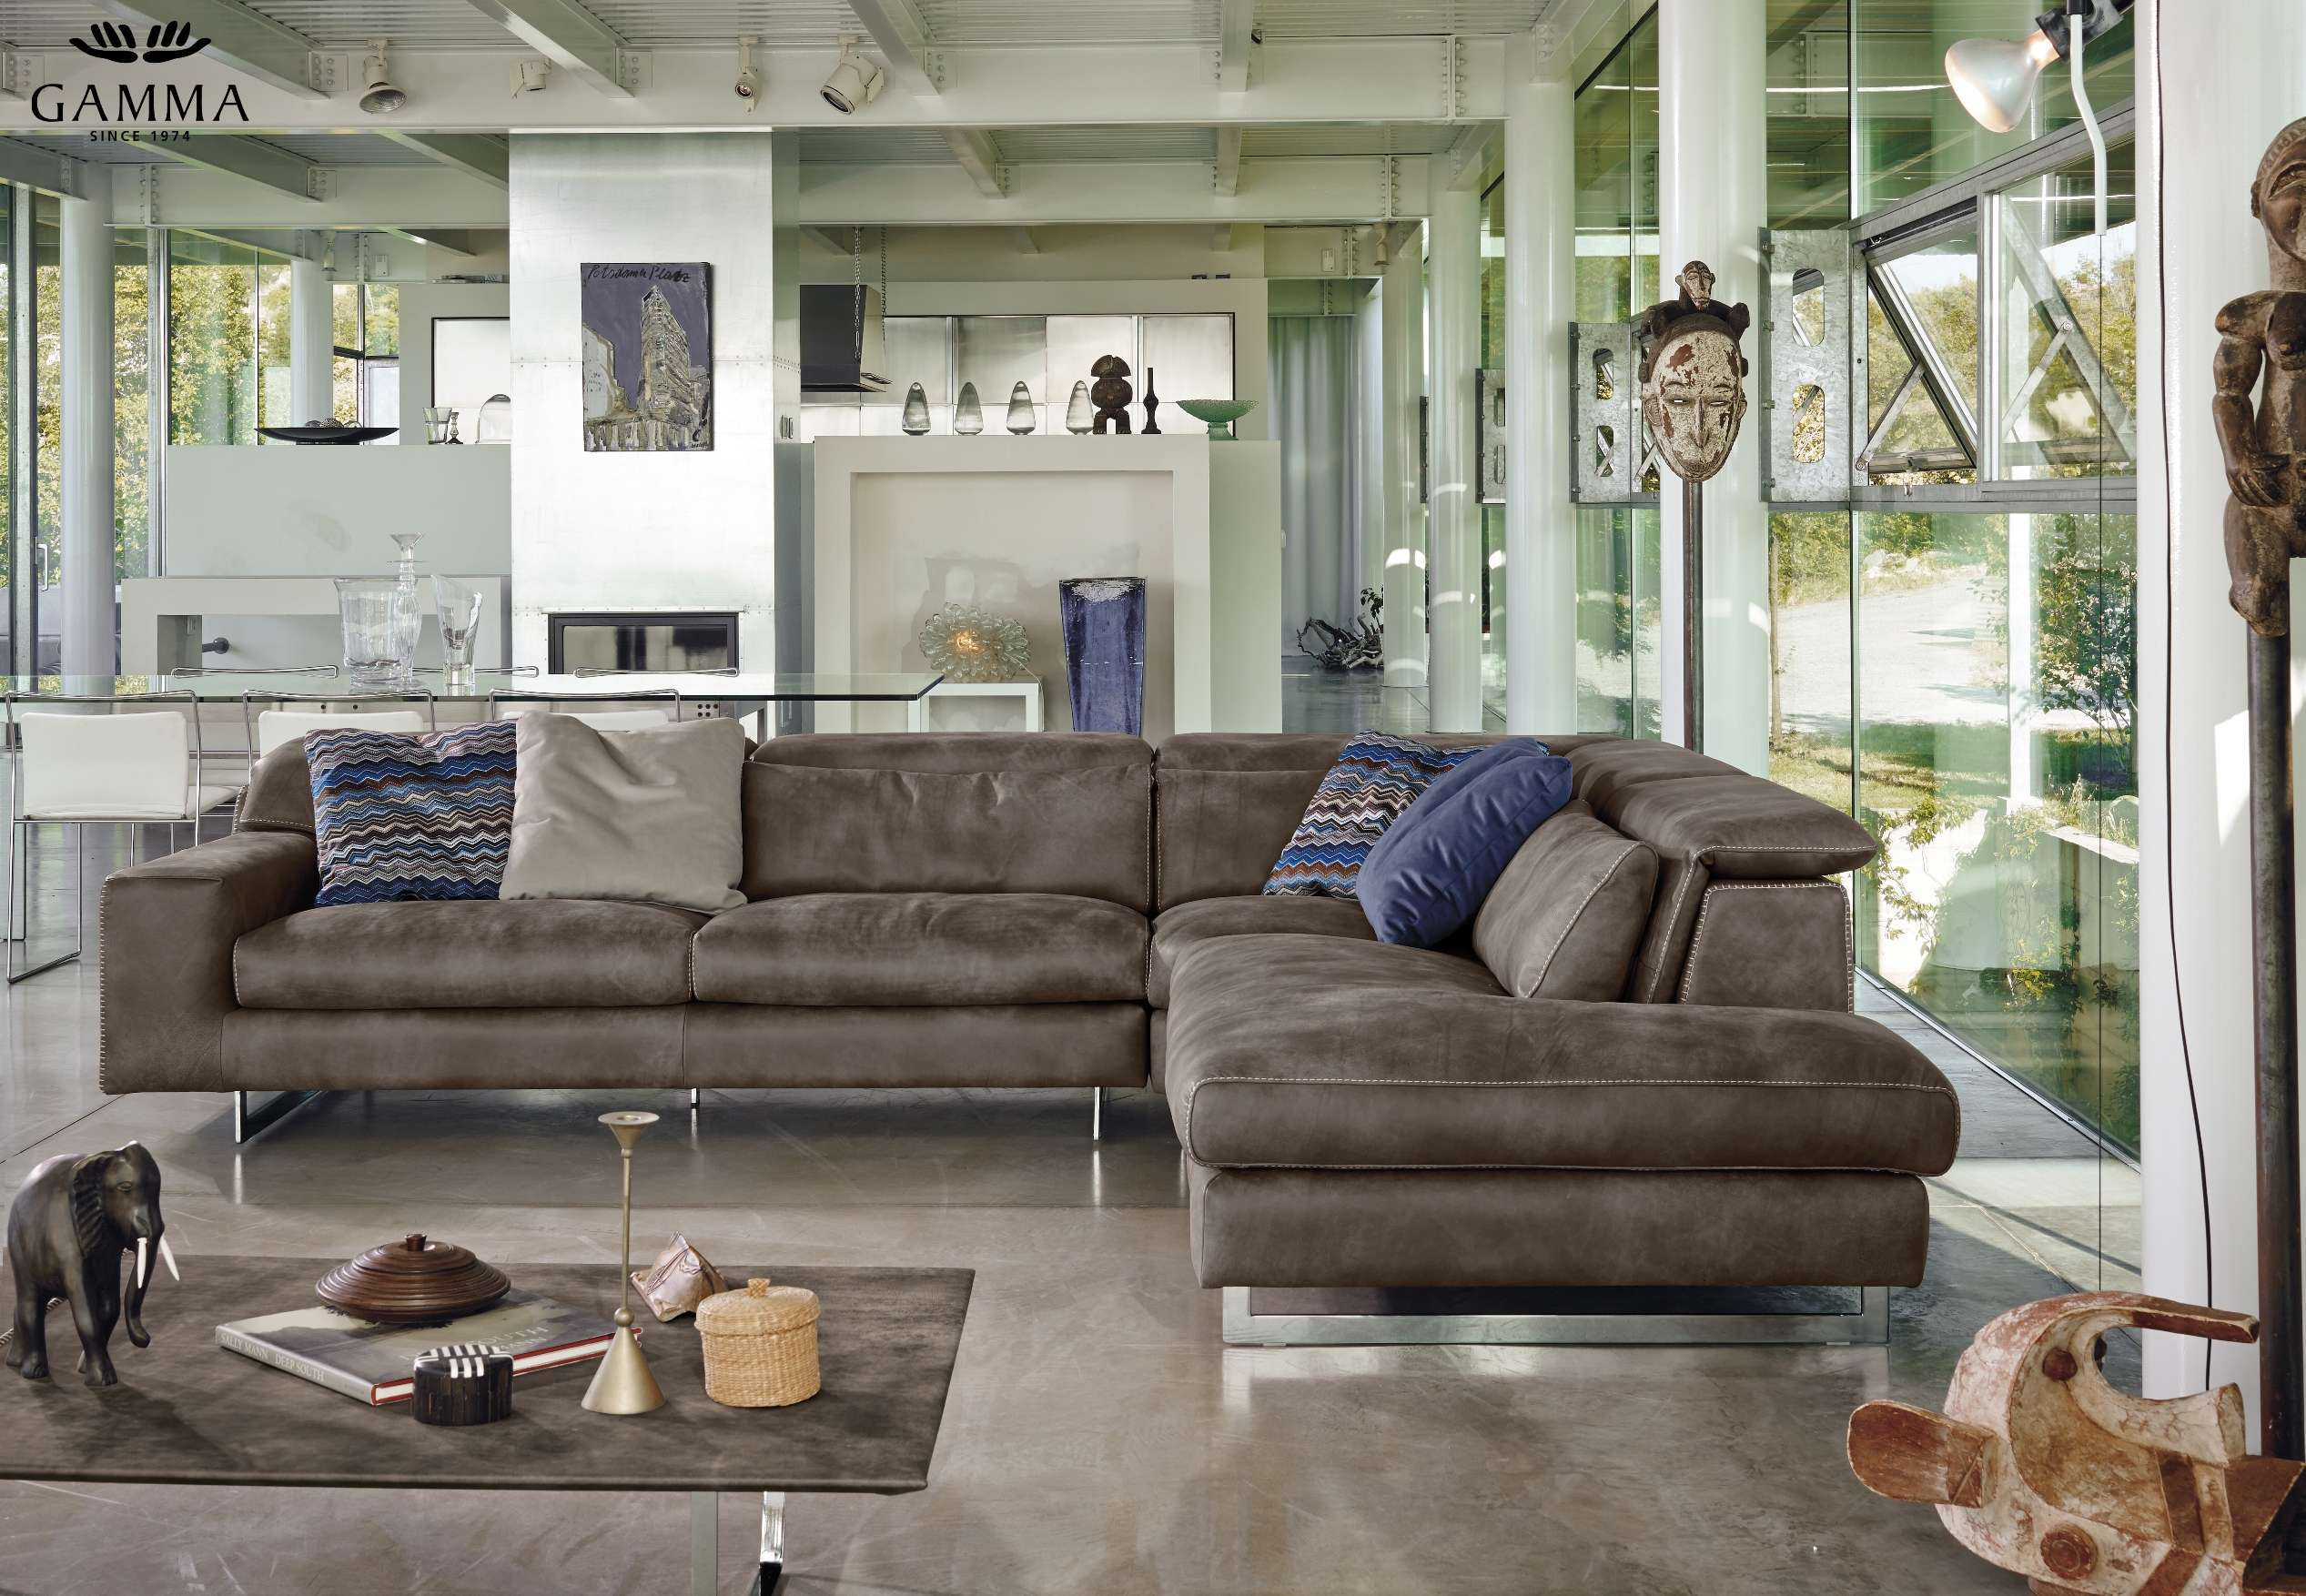 gamma sofas 100 cotton sofa slipcovers modern sound leather sectional online by